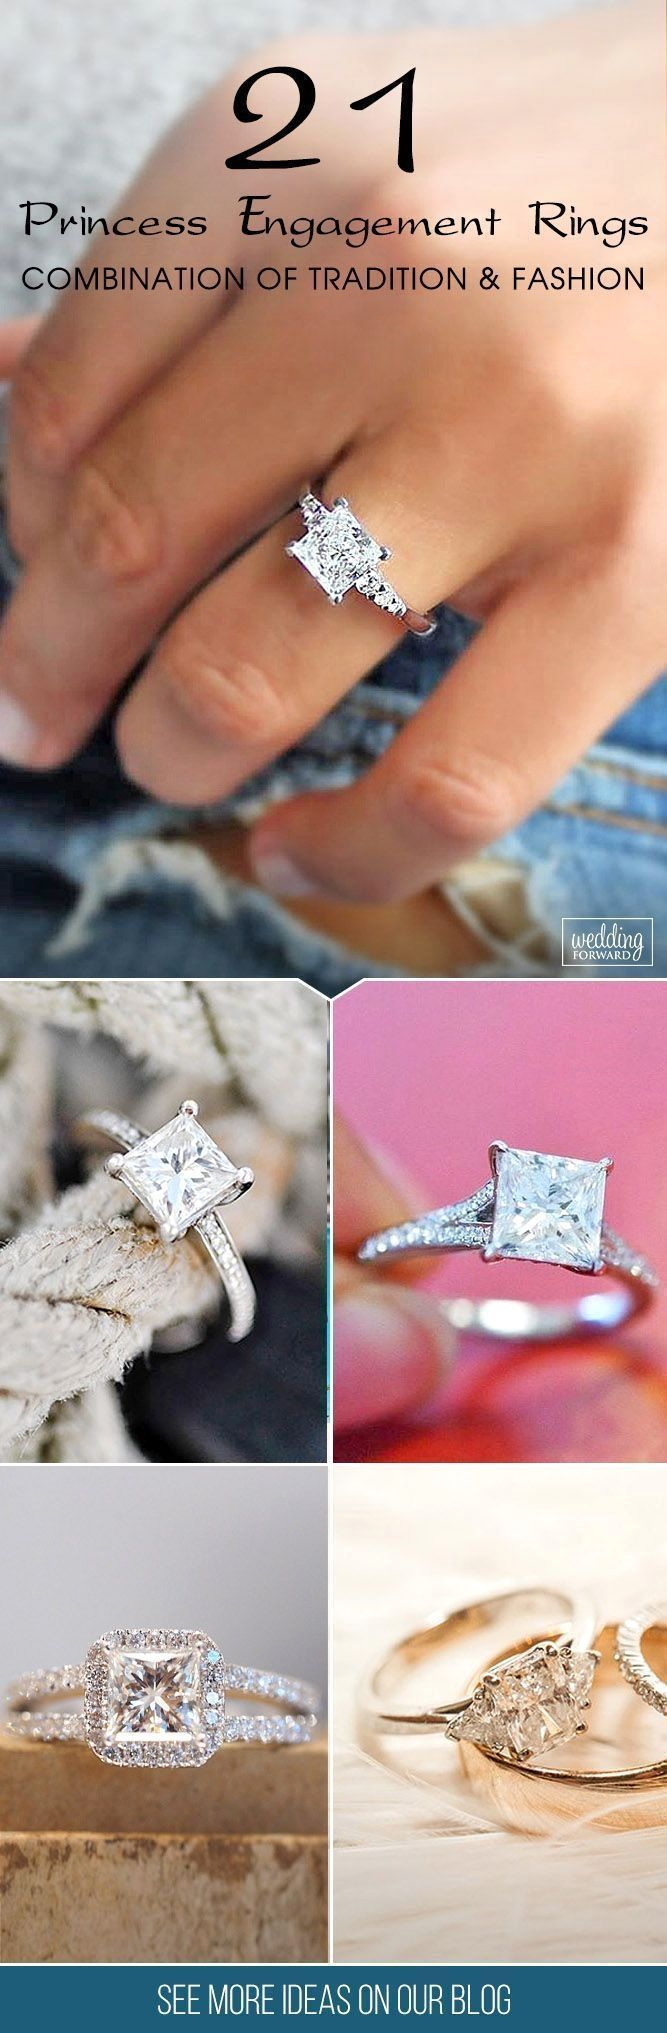 21 Breathtaking Princess Cut Engagement Rings ❤ Princess cut engagement rings are combination of tradition and fashion. Choose princess cut diamond rings you will get unique, modern shape and amazing sparkling appearance for lower price. #amazingrings #diamondengagementring #engagementrings